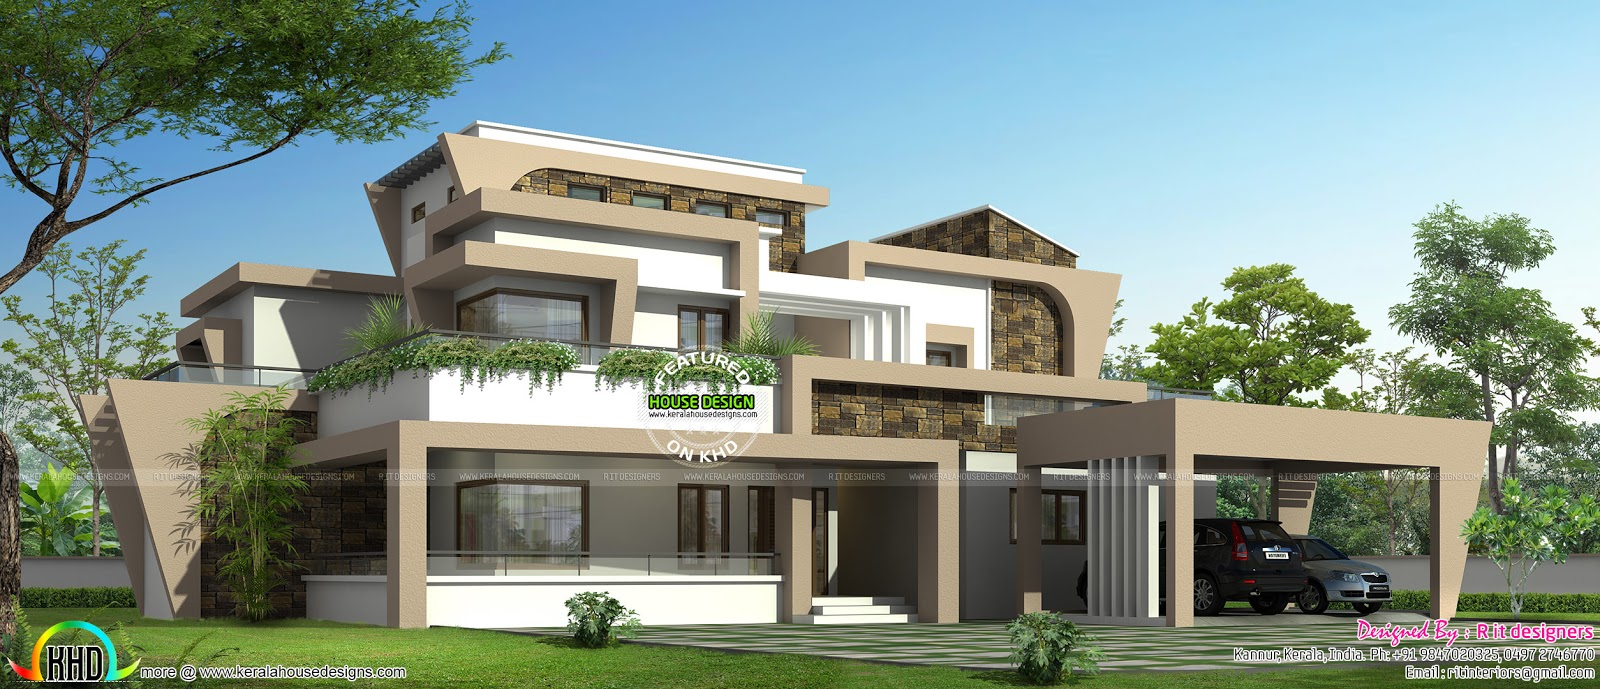 Unique modern home design in kerala kerala home design for Cool modern houses